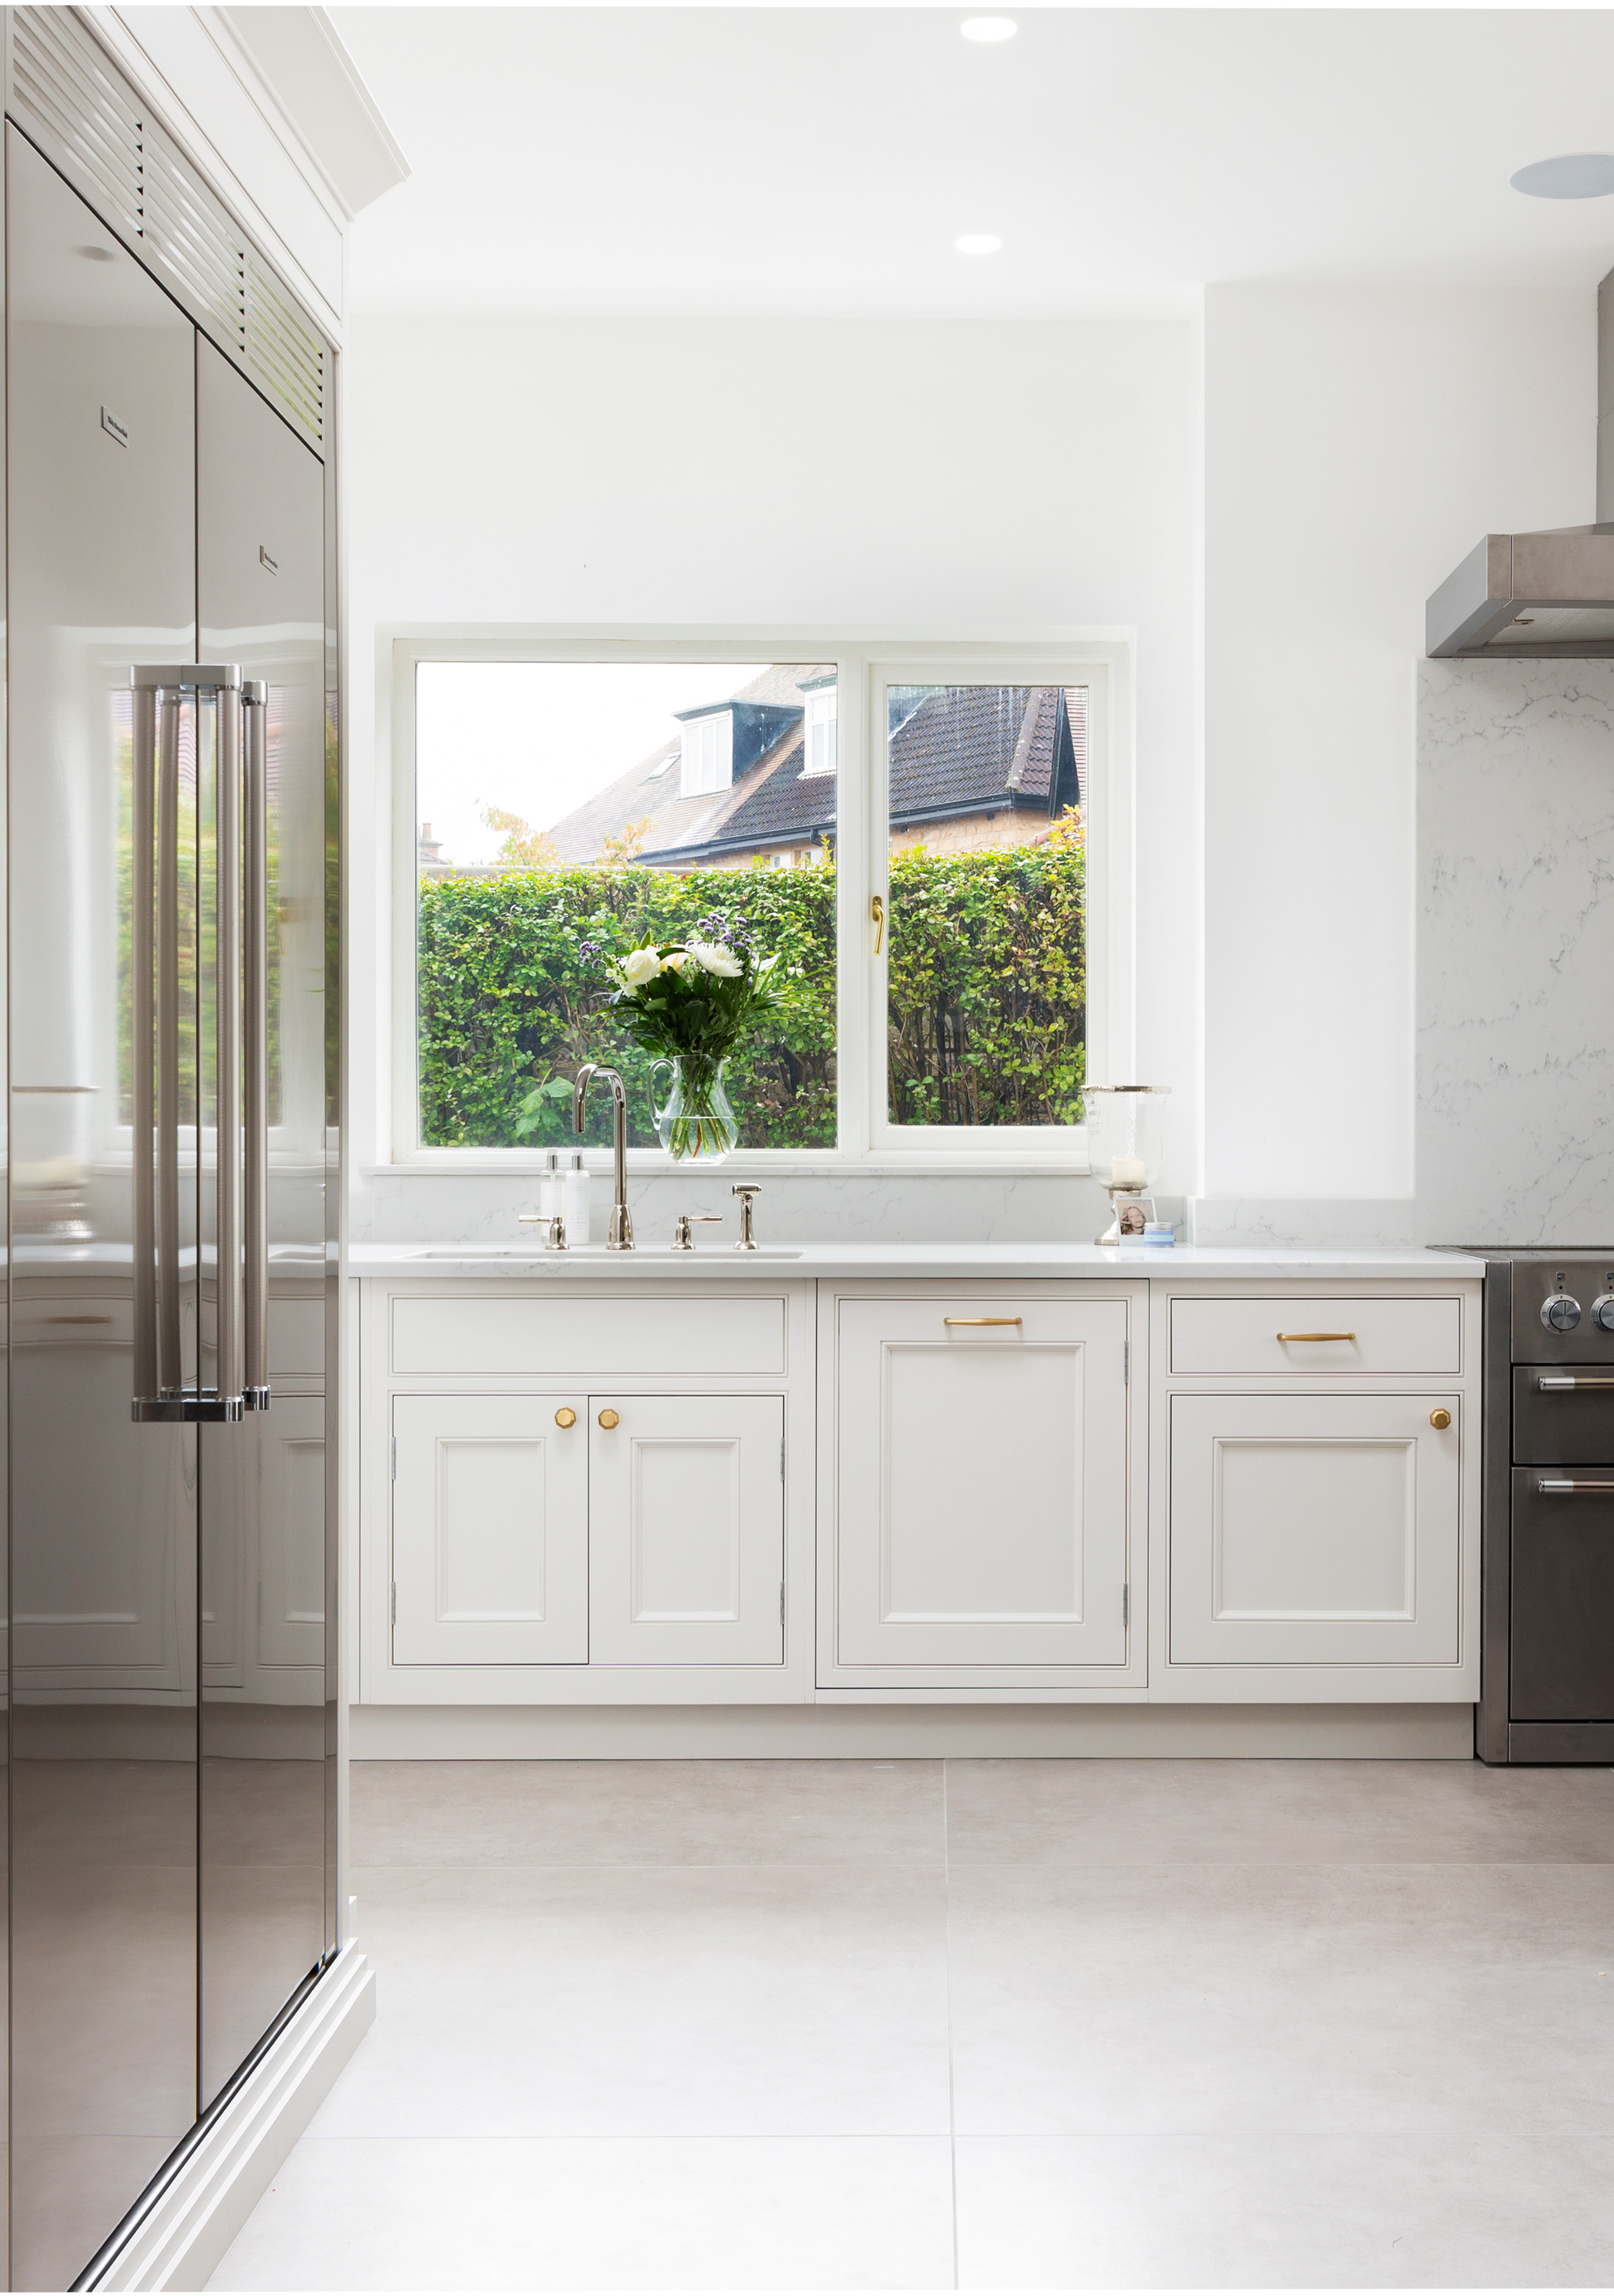 Watsons_Kitchens_Harrogate-2